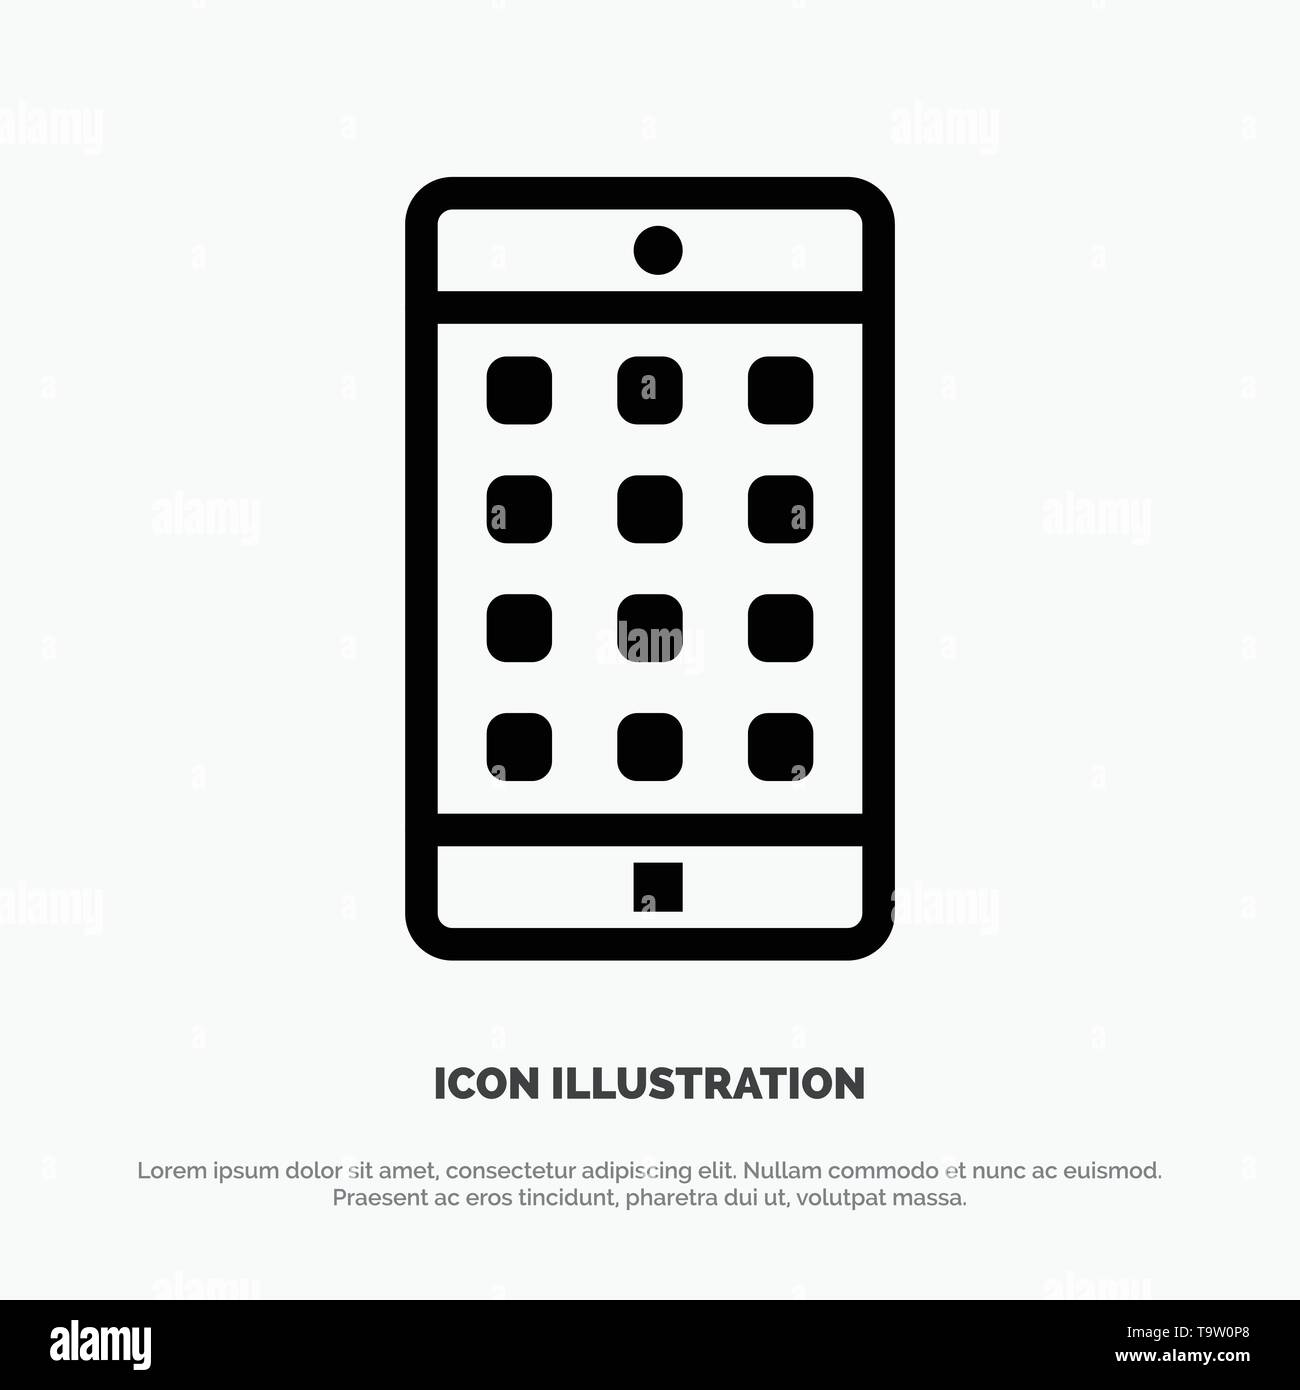 Application, Mobile, Mobile Application, Password Line Icon Vector - Stock Image